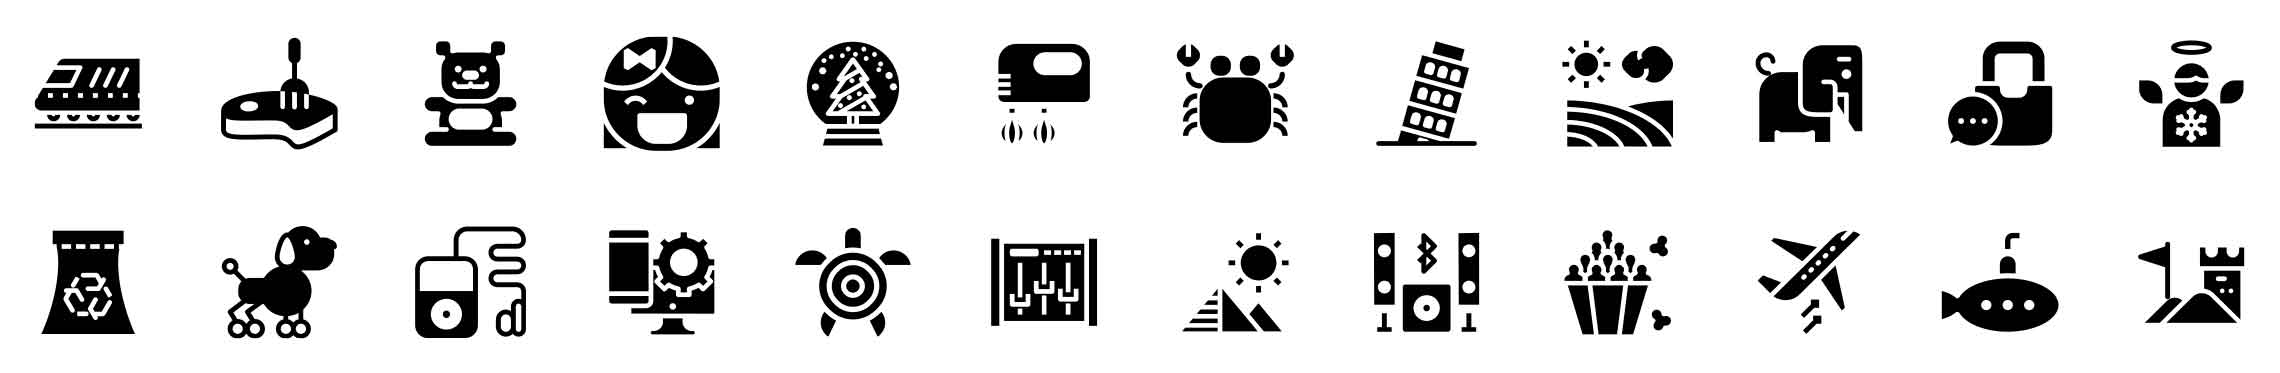 native solid icons pack